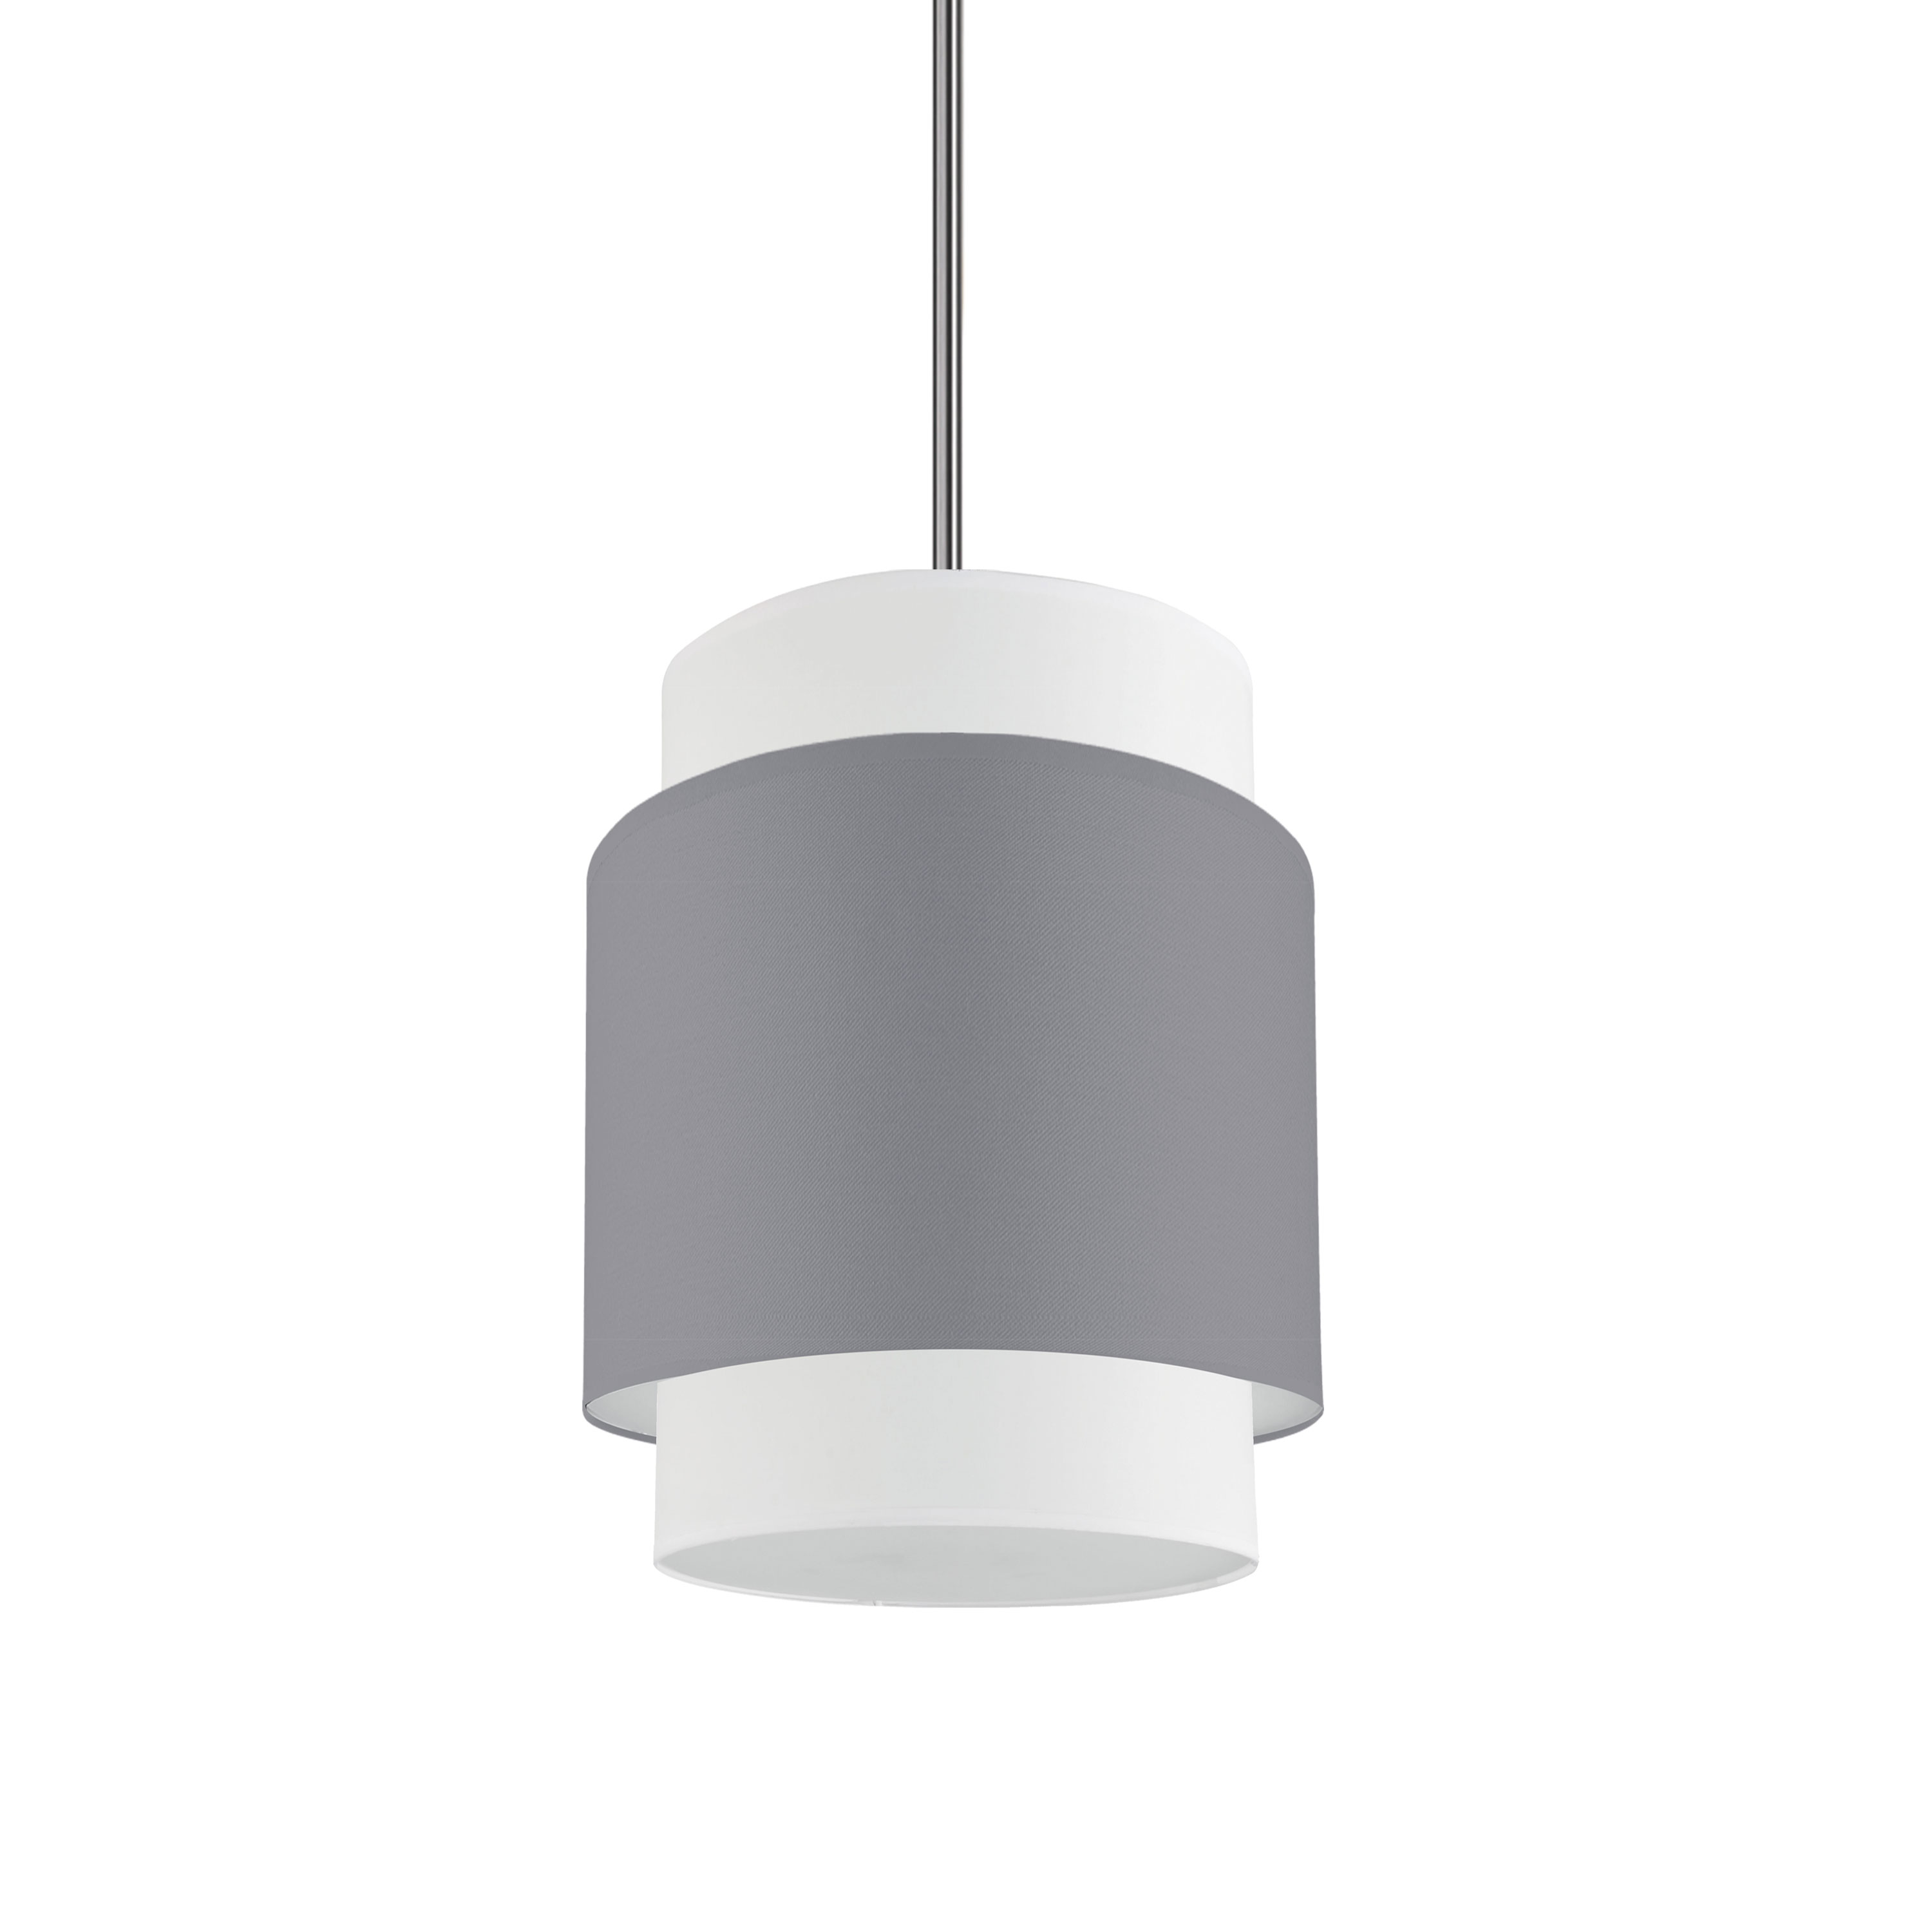 1LT Incandescent Pendant, PC w/ GRY&WH Shade